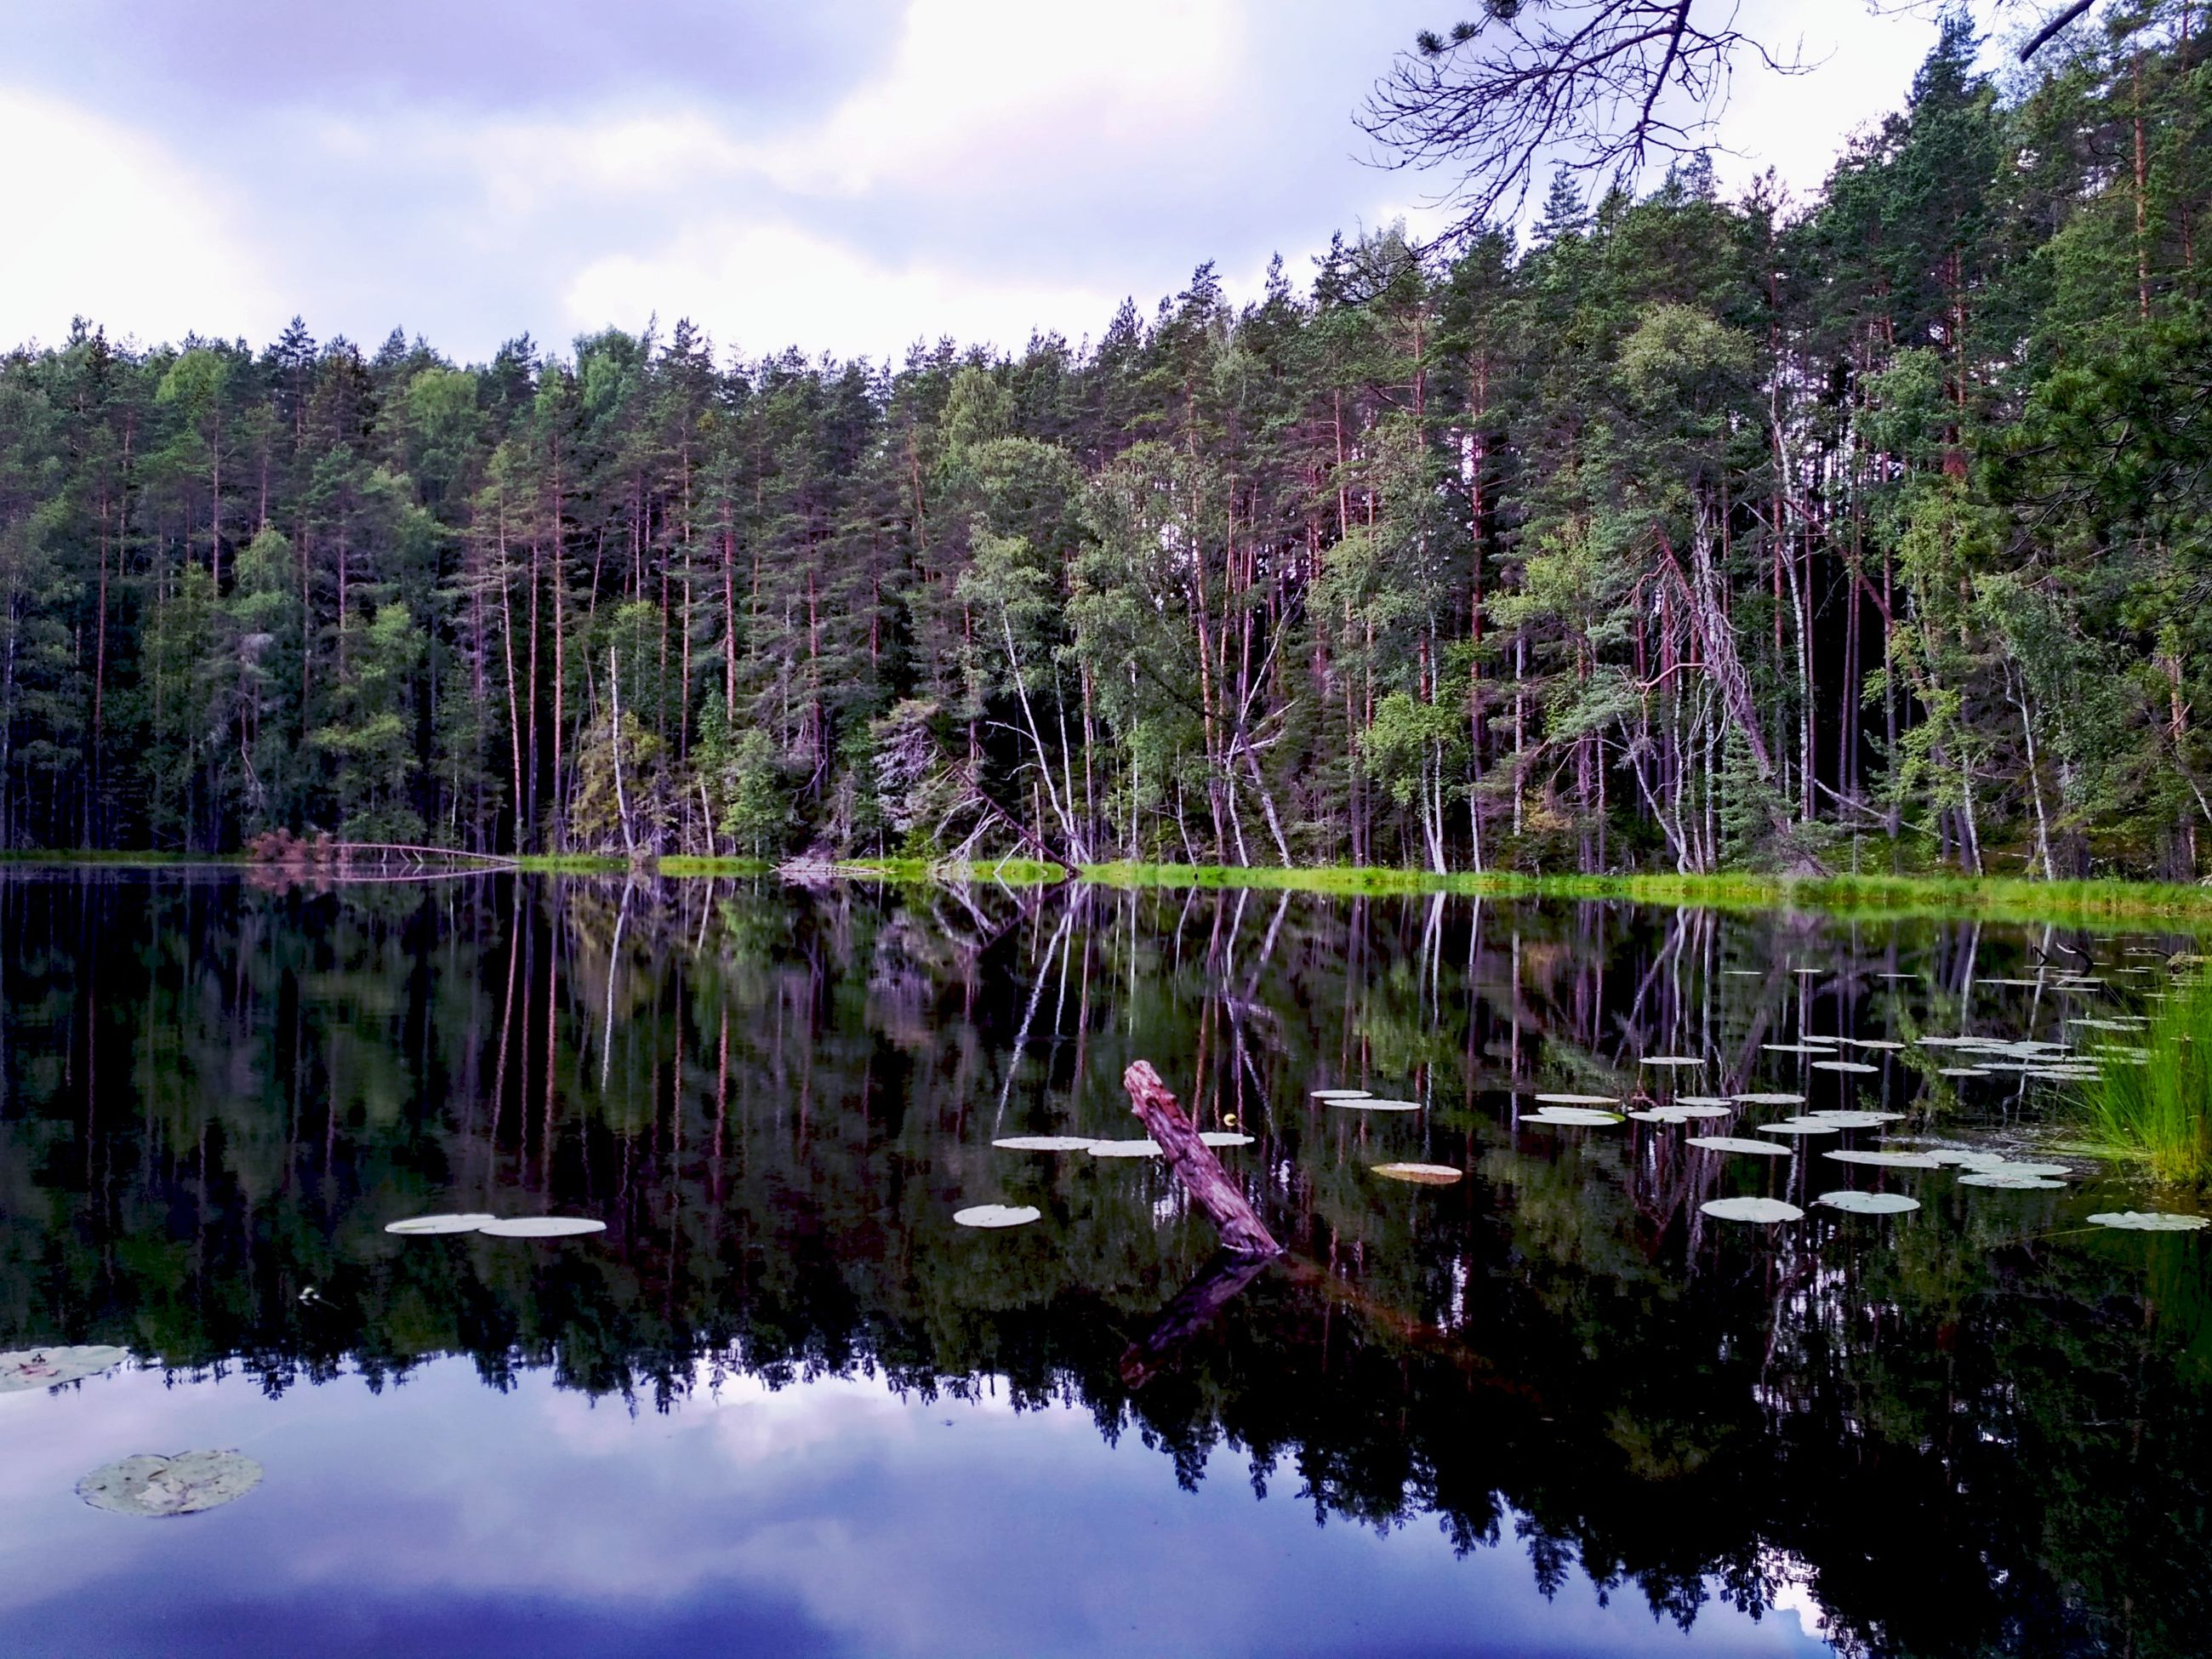 nature, tree, water, sky, beauty in nature, lake, outdoors, reflection, tranquility, scenics, day, growth, tranquil scene, waterfront, no people, cloud - sky, animals in the wild, forest, swan, bird, animal themes